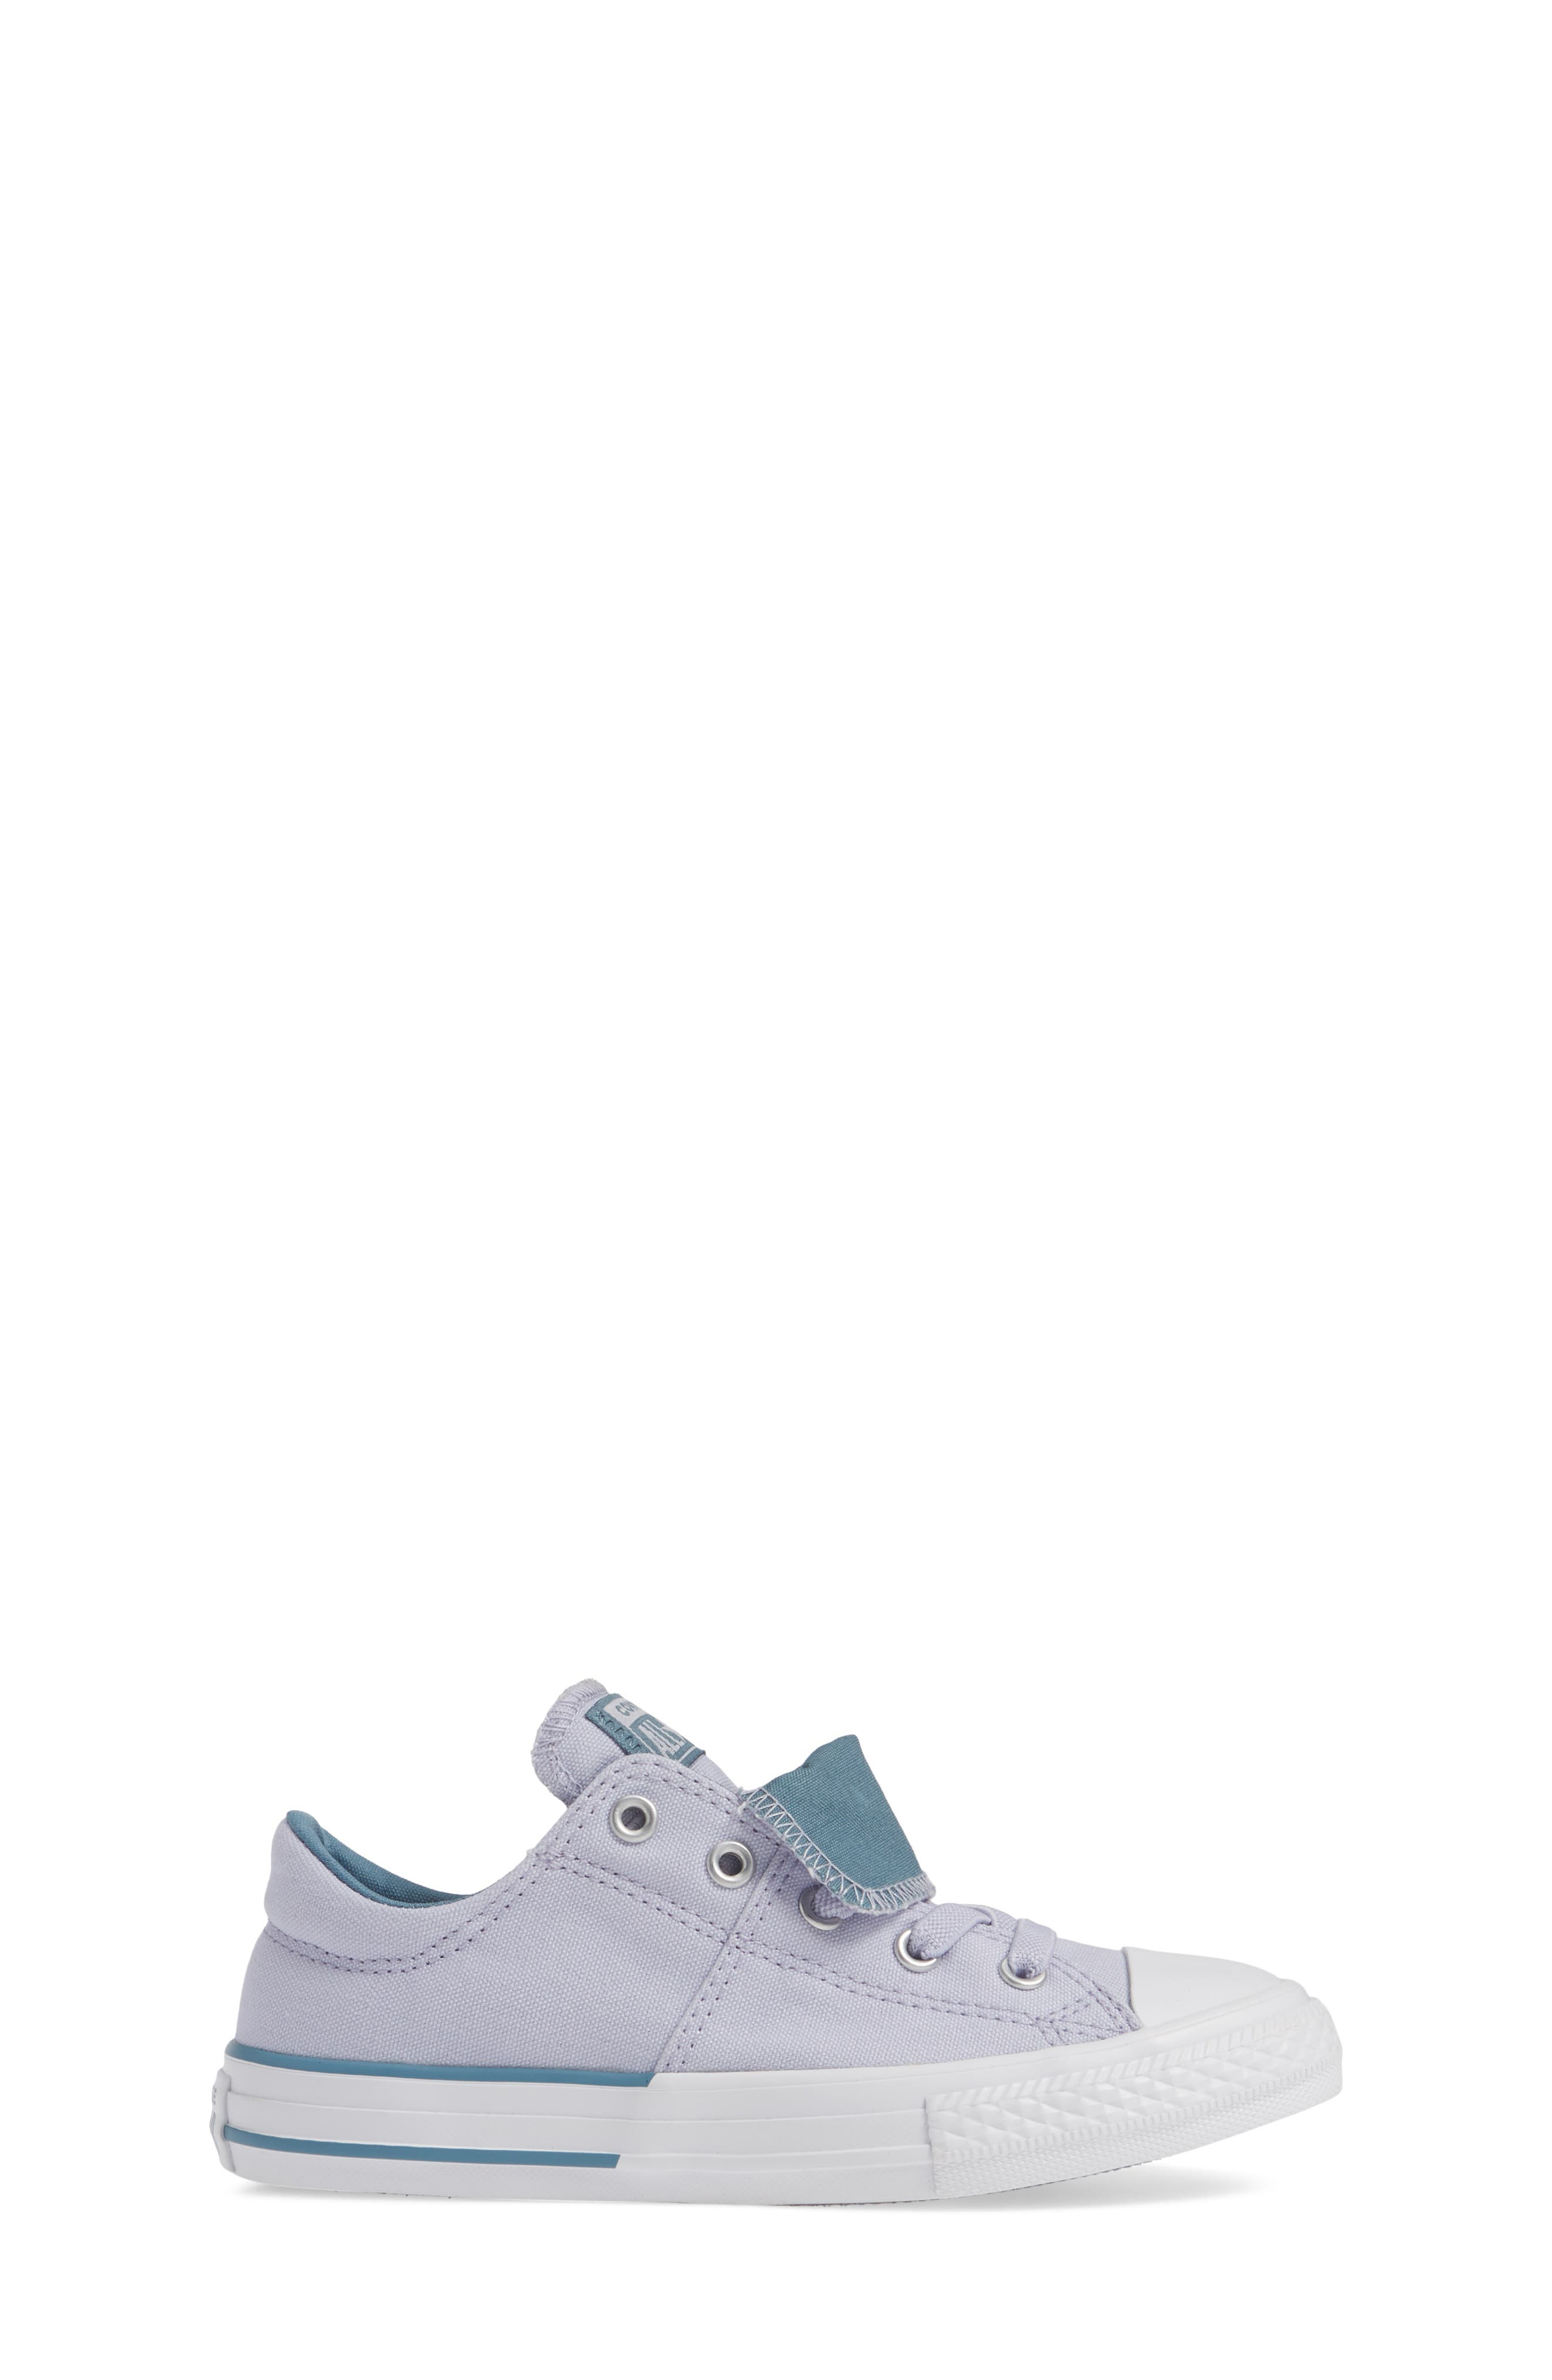 ,                             Chuck Taylor<sup>®</sup> All Star<sup>®</sup> Maddie Double Tongue Sneaker,                             Alternate thumbnail 75, color,                             530